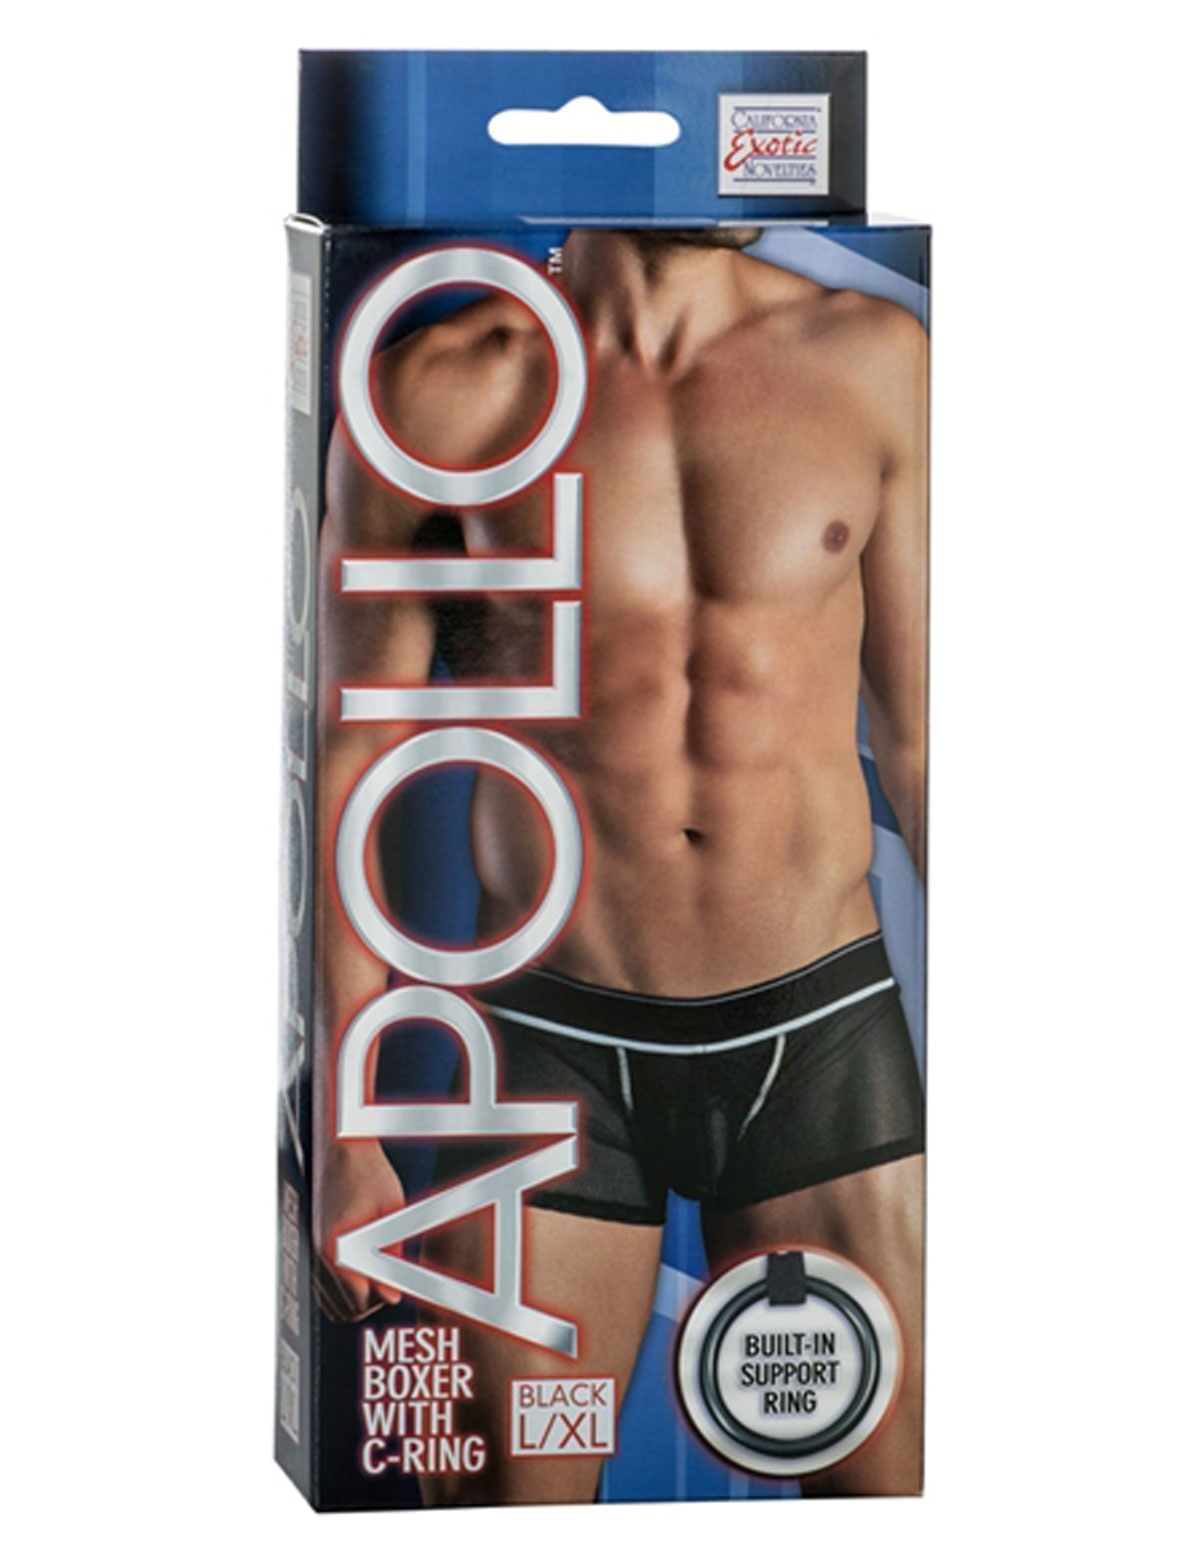 Apollo Mesh Boxer W/C-Ring